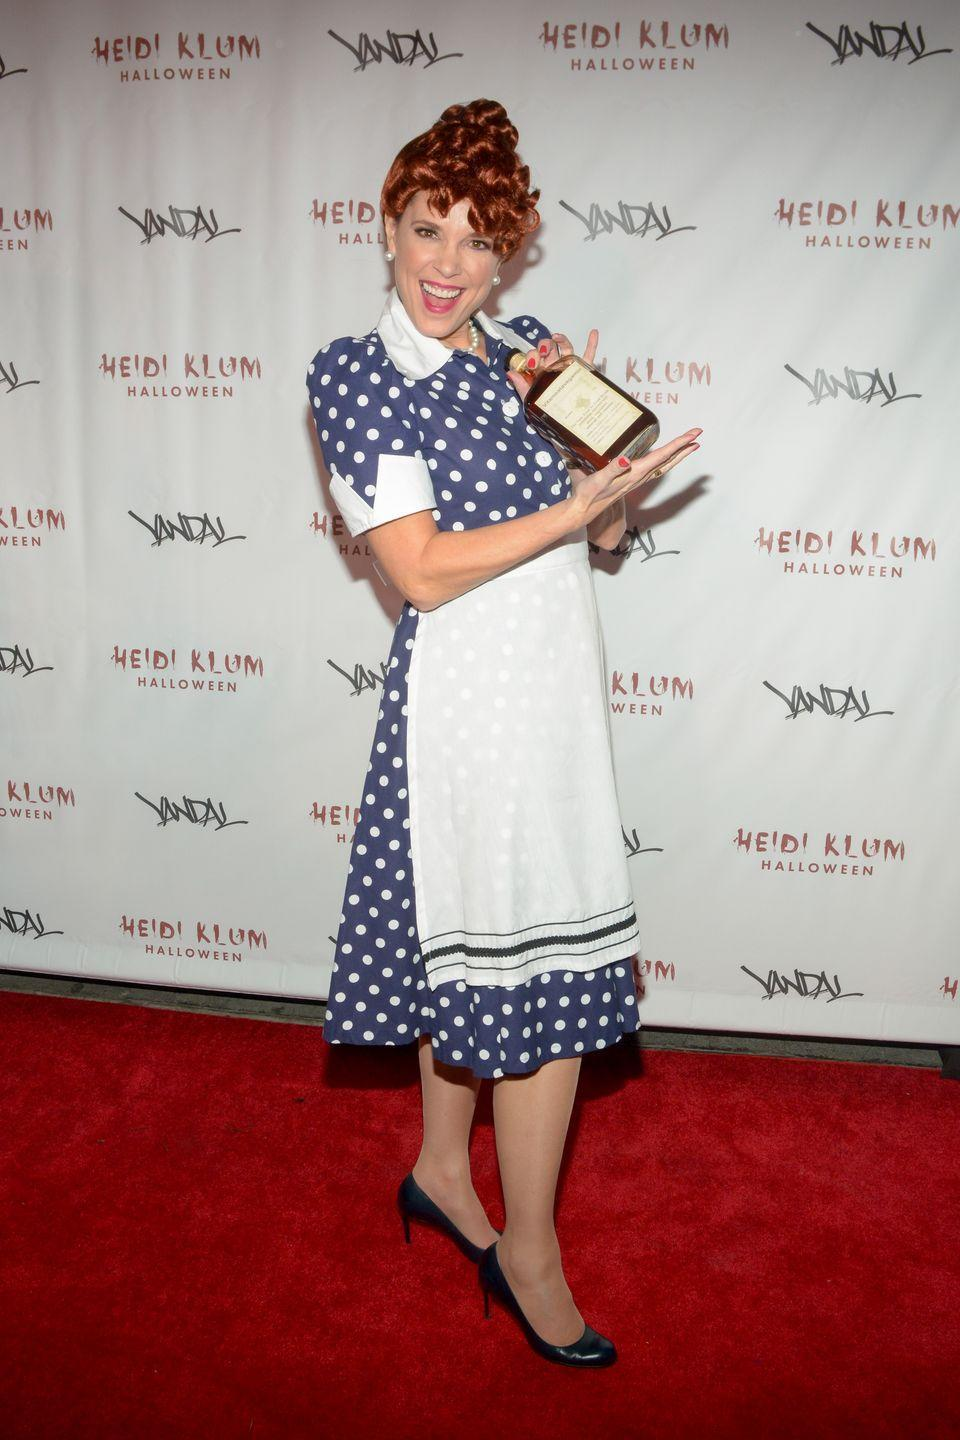 """<p>Pair a polka-dot dress and an apron with an updo to become comedic legend Lucille Ball. </p><p><strong>What You'll Need:</strong> <a href=""""https://www.amazon.com/DRESSTELLS-Blue-Small-White-Dot/dp/B07BPSN2Q9?tag=syn-yahoo-20&ascsubtag=%5Bartid%7C10070.g.28166042%5Bsrc%7Cyahoo-us"""" rel=""""nofollow noopener"""" target=""""_blank"""" data-ylk=""""slk:blue polka-dot dress"""" class=""""link rapid-noclick-resp"""">blue polka-dot dress</a>, <a href=""""https://www.amazon.com/Uncommon-Threads-Unisex-Waist-Apron/dp/B00EYH3OIK?tag=syn-yahoo-20&ascsubtag=%5Bartid%7C10070.g.28166042%5Bsrc%7Cyahoo-us"""" rel=""""nofollow noopener"""" target=""""_blank"""" data-ylk=""""slk:white apron"""" class=""""link rapid-noclick-resp"""">white apron</a>, and <a href=""""https://www.amazon.com/Guilty-Shoes-Womens-Classic-Closed/dp/B08J7XB3B3?tag=syn-yahoo-20&ascsubtag=%5Bartid%7C10070.g.28166042%5Bsrc%7Cyahoo-us"""" rel=""""nofollow noopener"""" target=""""_blank"""" data-ylk=""""slk:black heels"""" class=""""link rapid-noclick-resp"""">black heels</a></p>"""